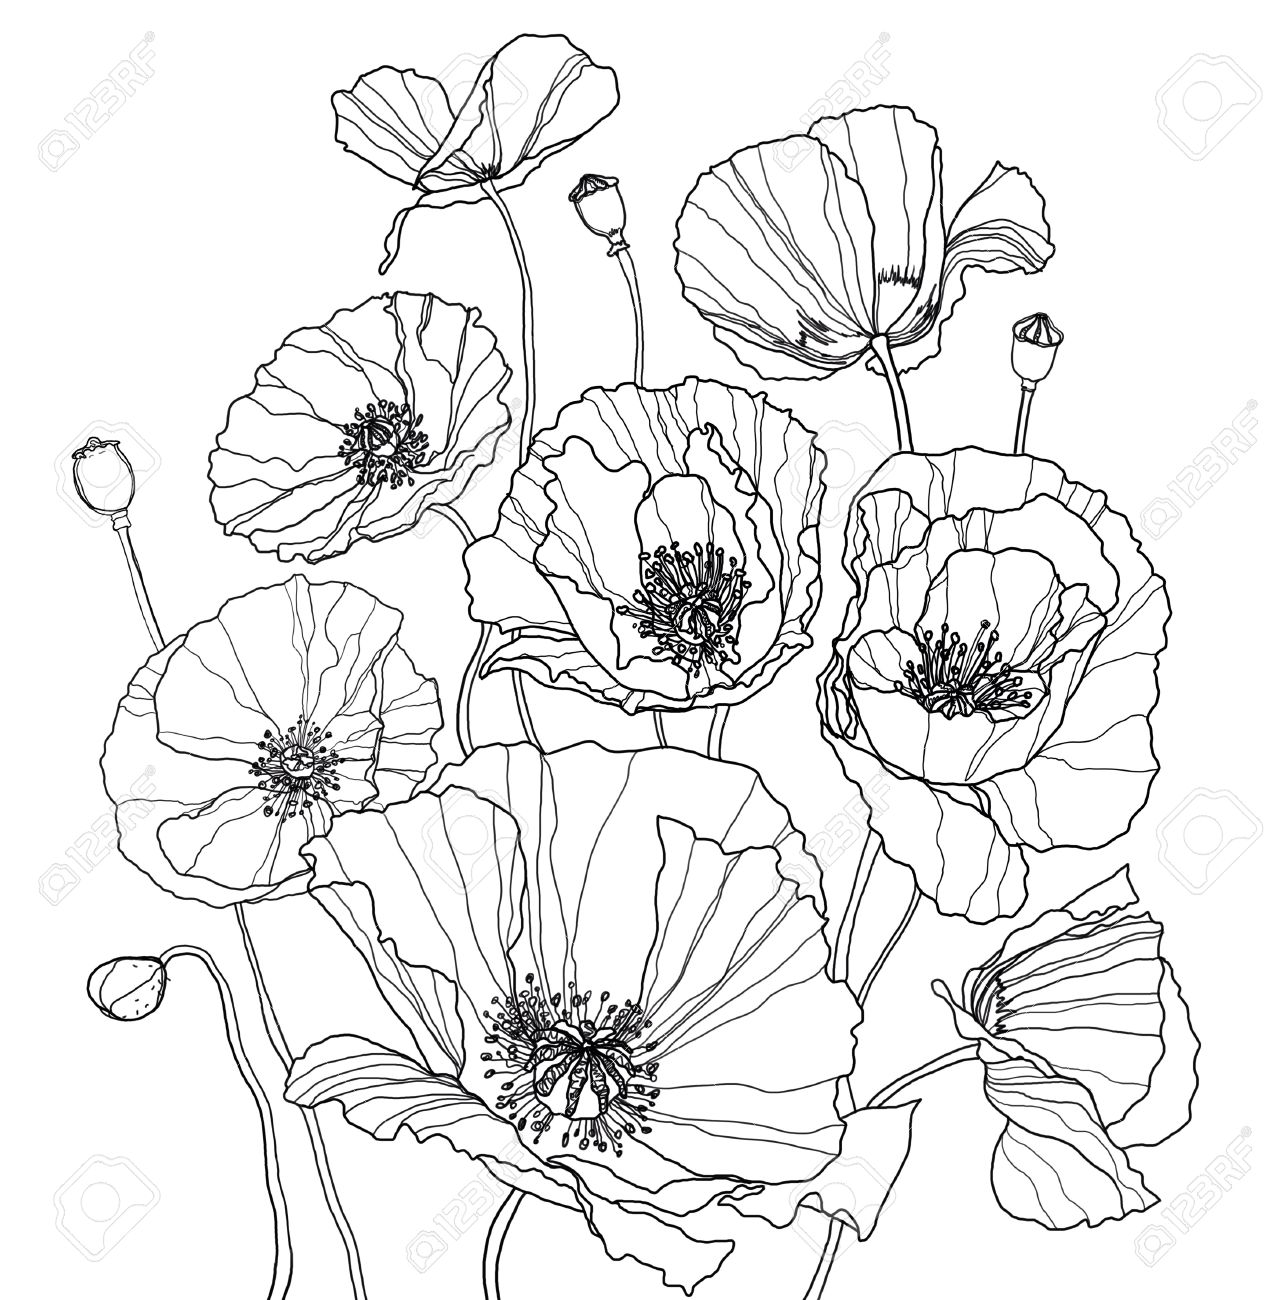 coloring page with poppies it is a big raster image stock photo